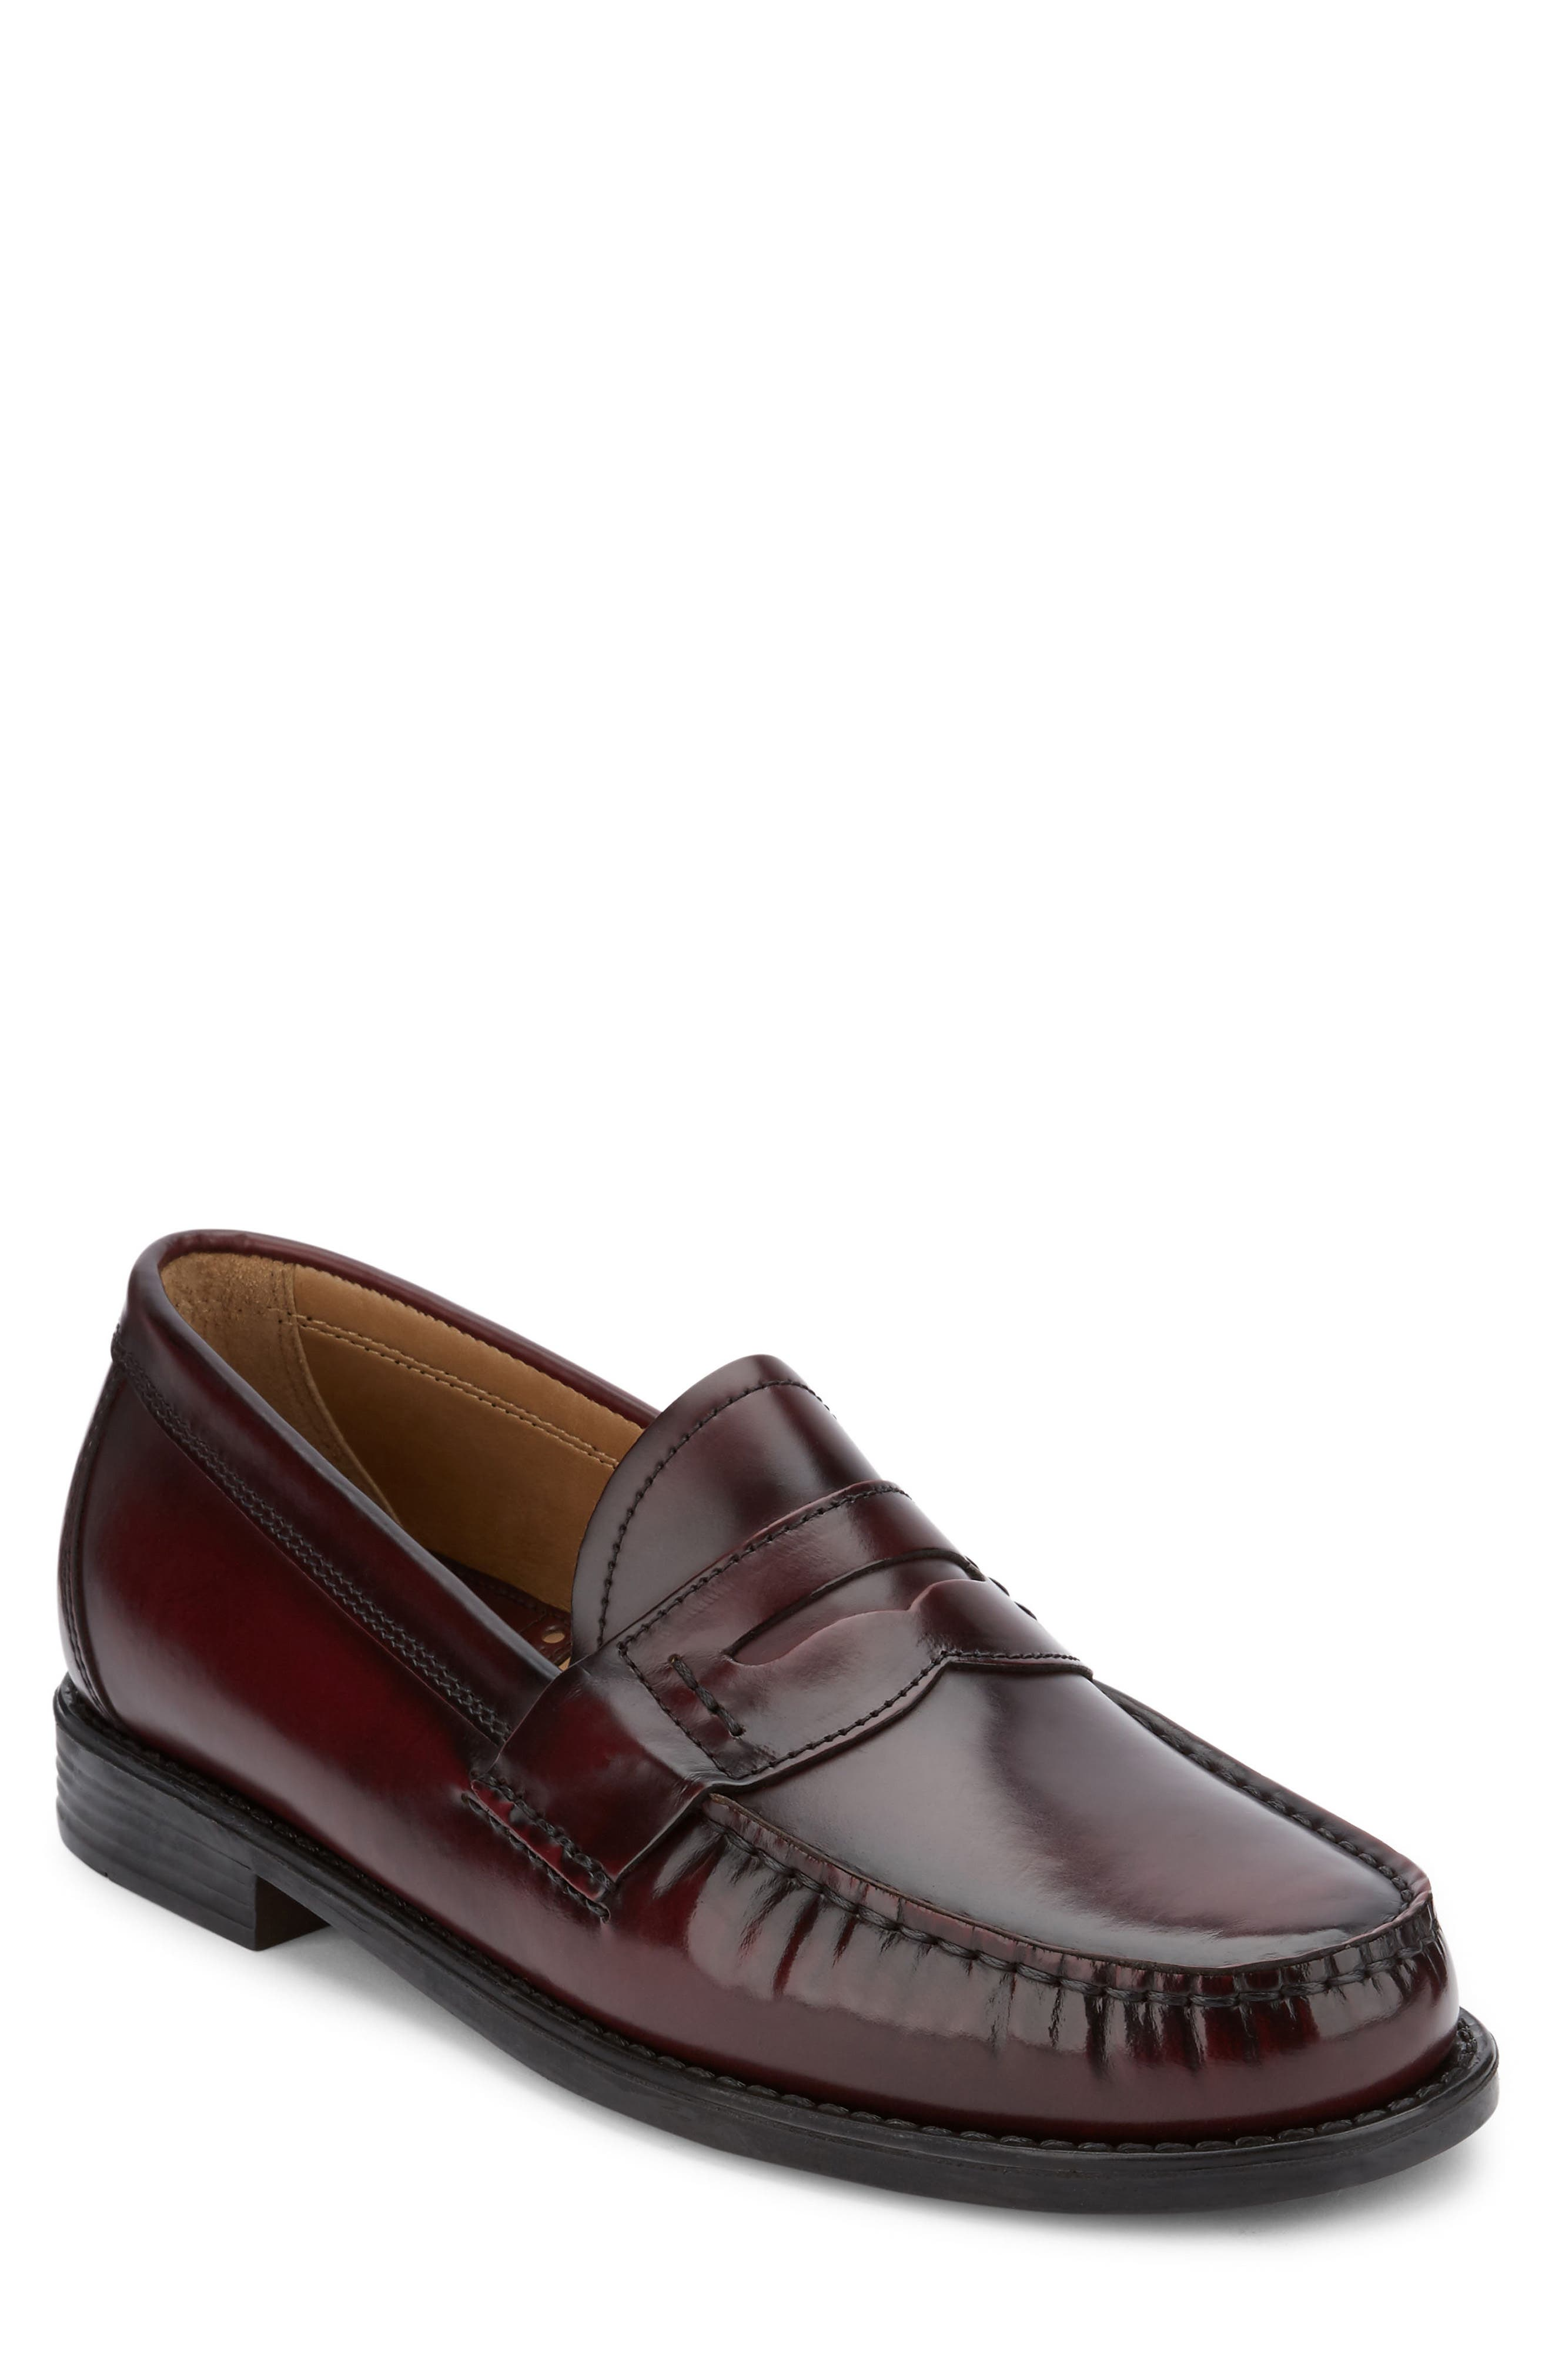 Wagner Penny Loafer,                         Main,                         color, 933